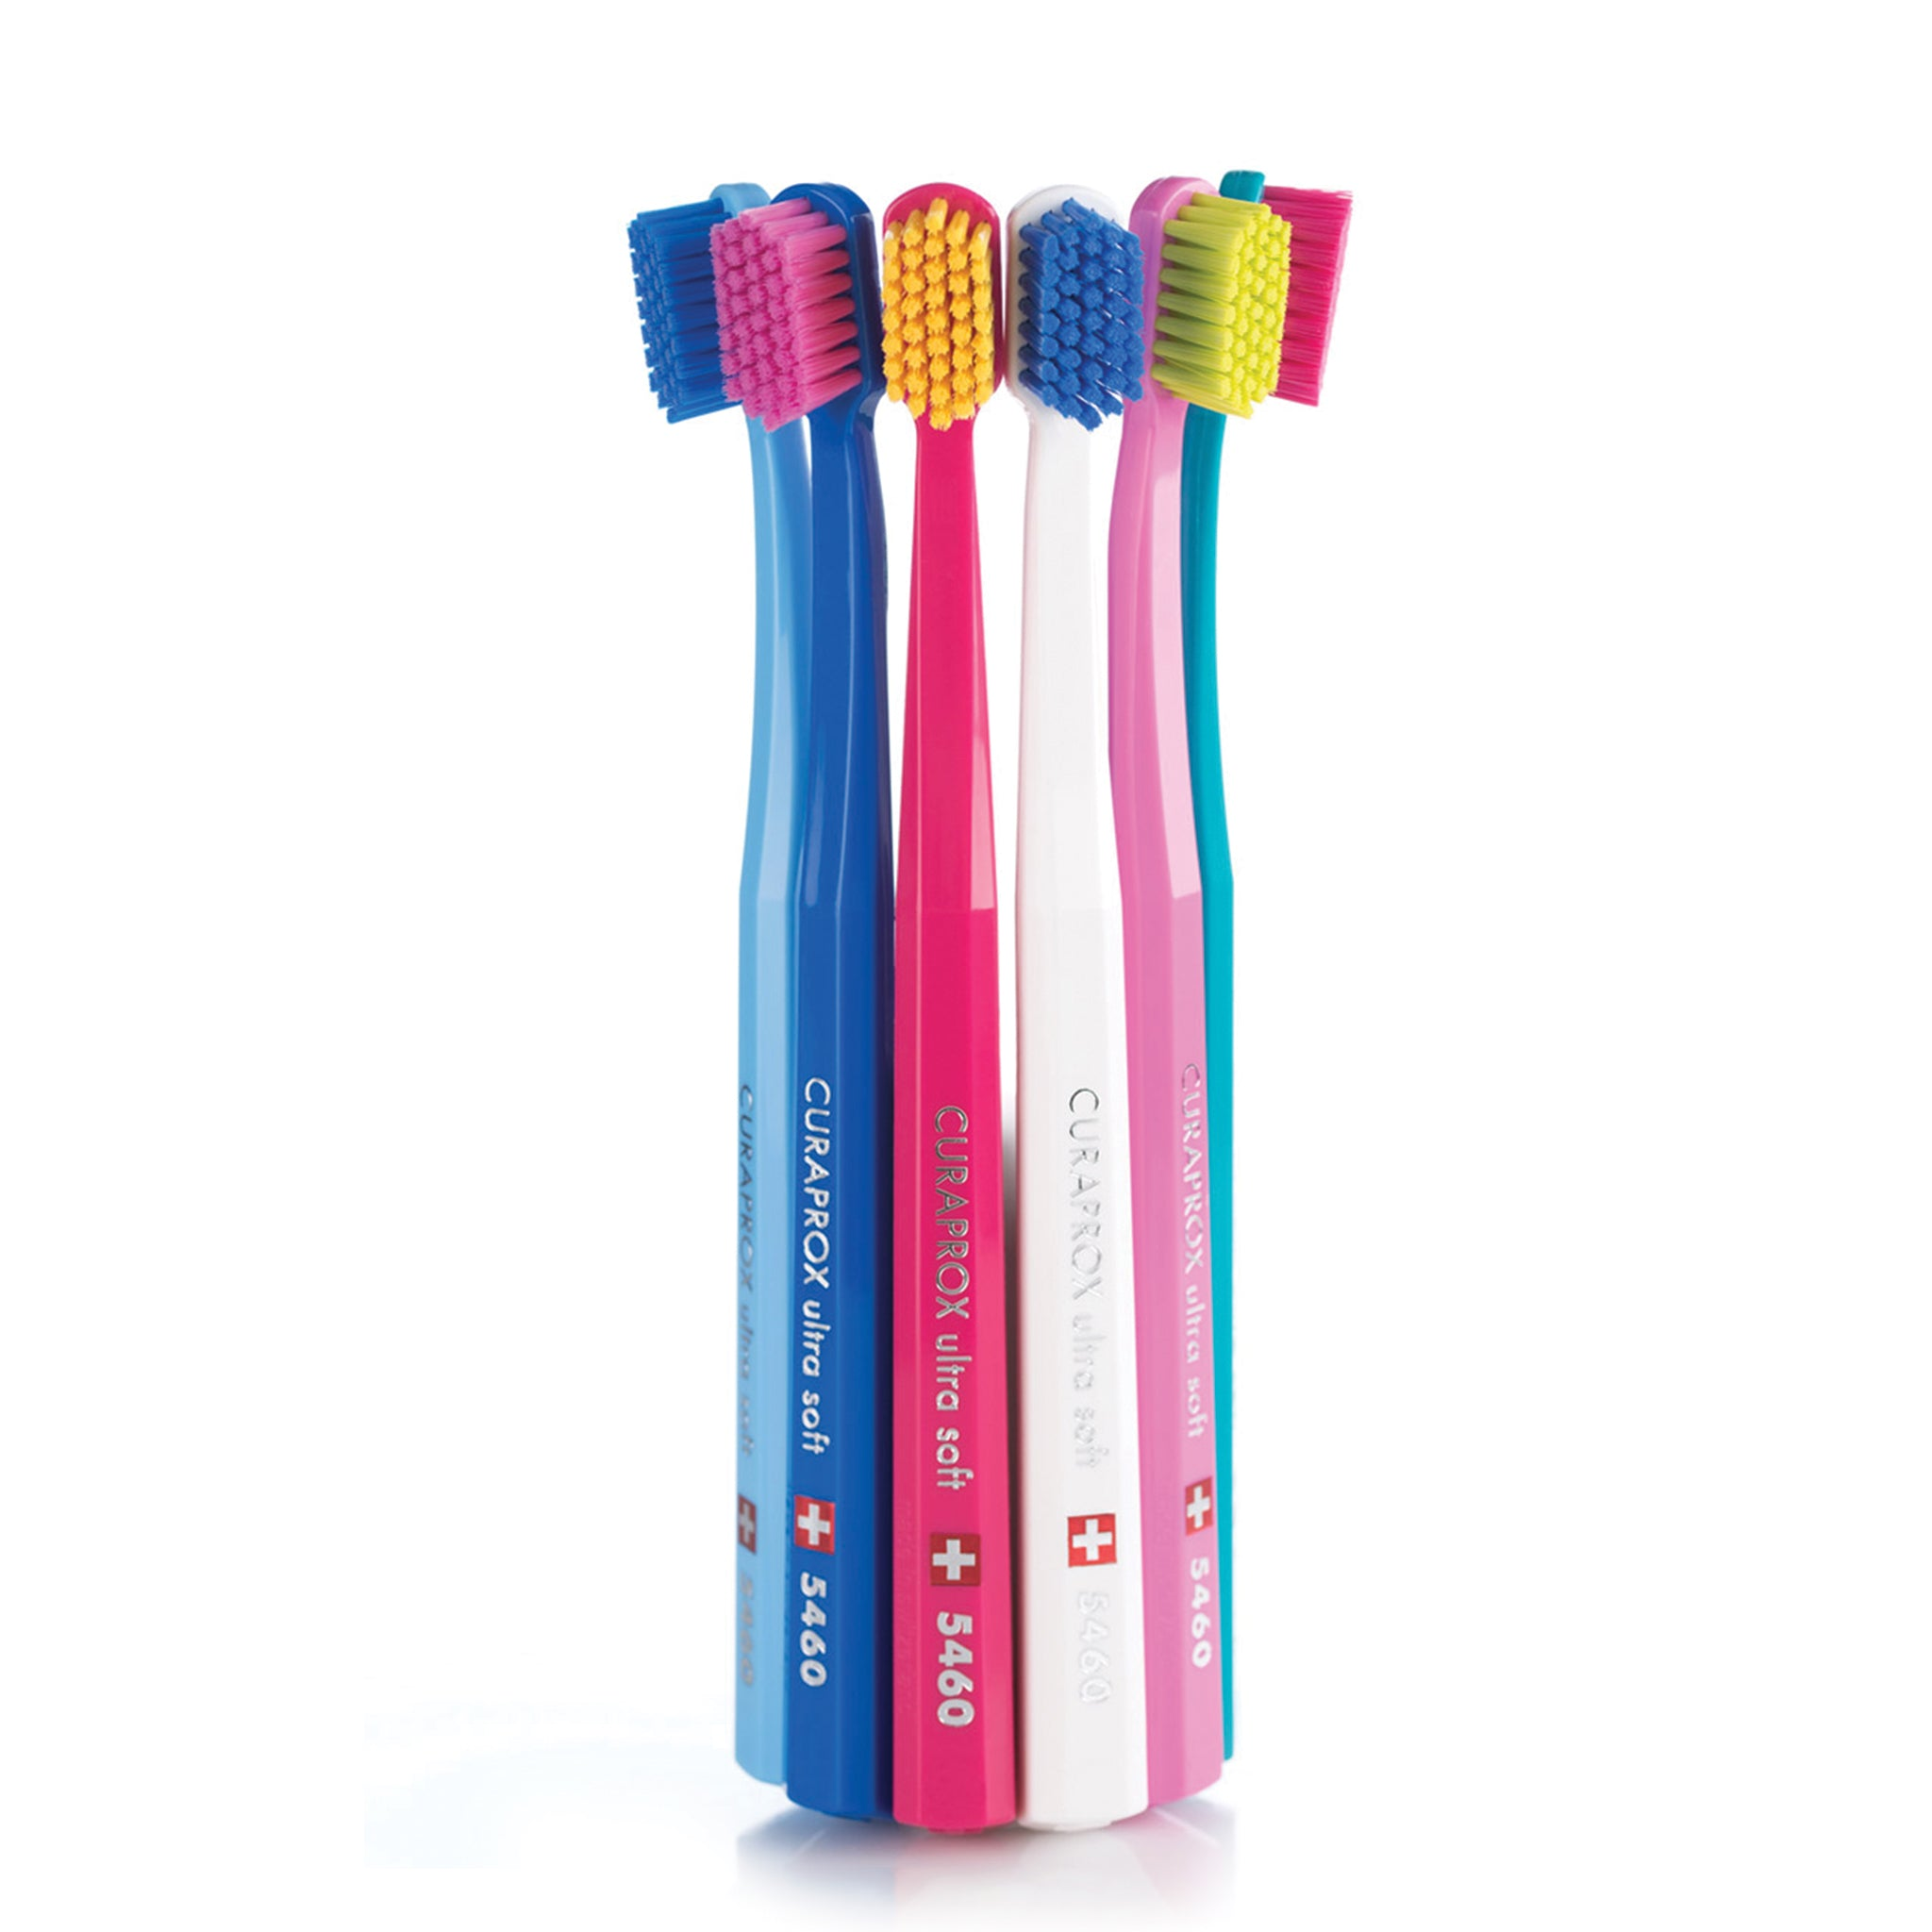 CURAPROX toothbrush's do not use nylon to make the bristles, instead they use very fine filaments made of CUREN®. CUREN® allows the bristles to be very fine ensuring there is no damage to the gums as well as feeling incredibly good when brushing.